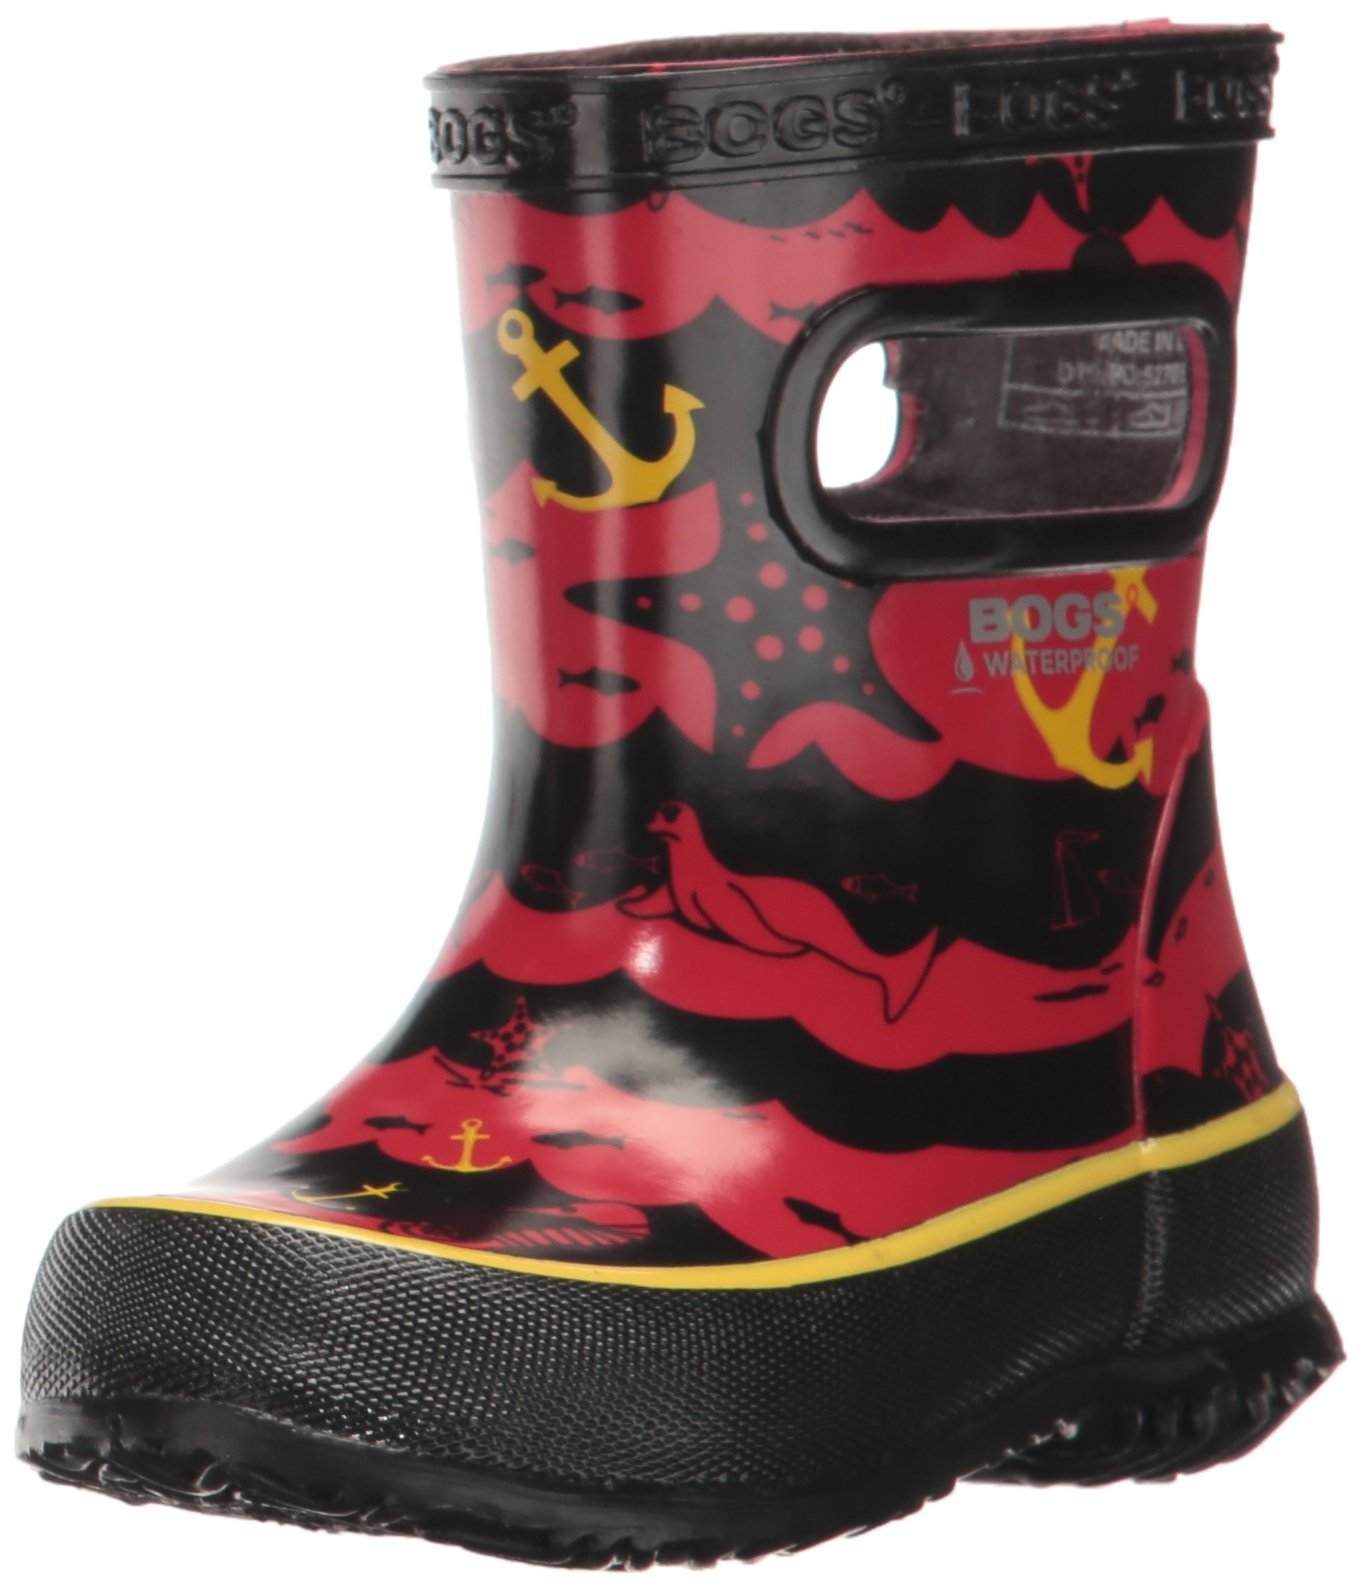 232b7b2f59 The Best Rain Boots for Toddlers- Keep Kids Warm and Dry!